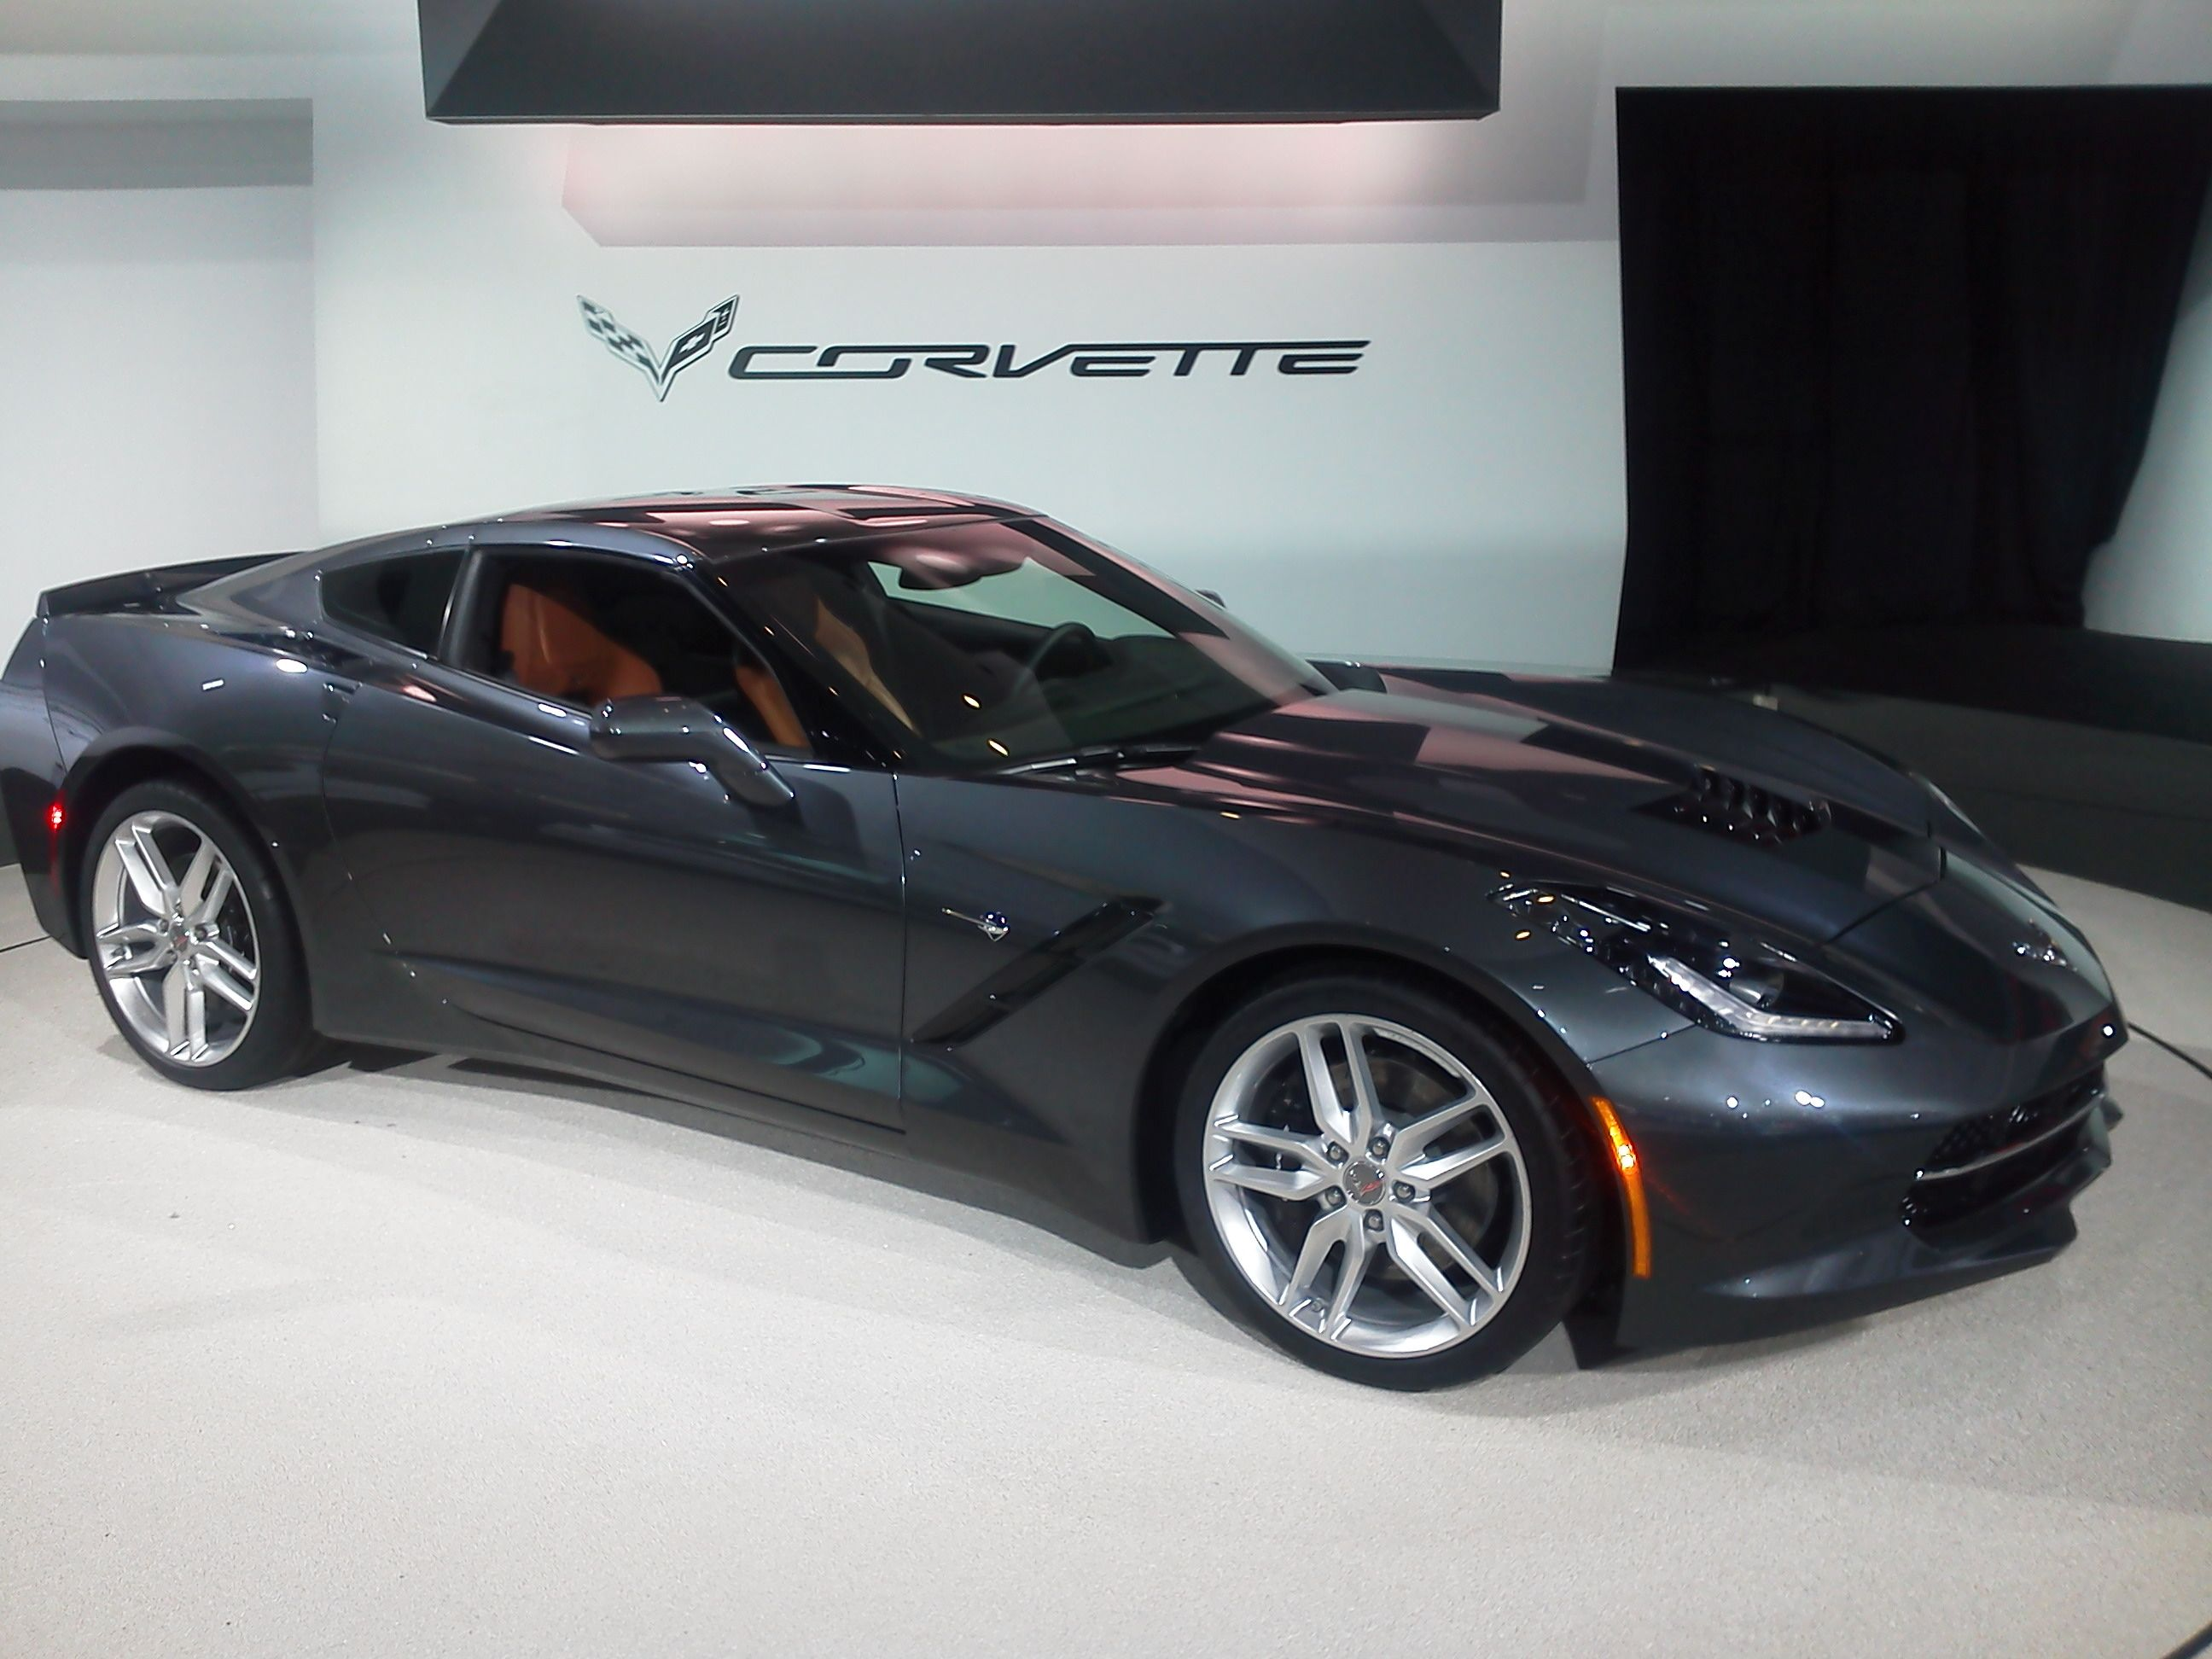 New Corvette Stingray at the NAIAS in Detroit Jan 16th 2013